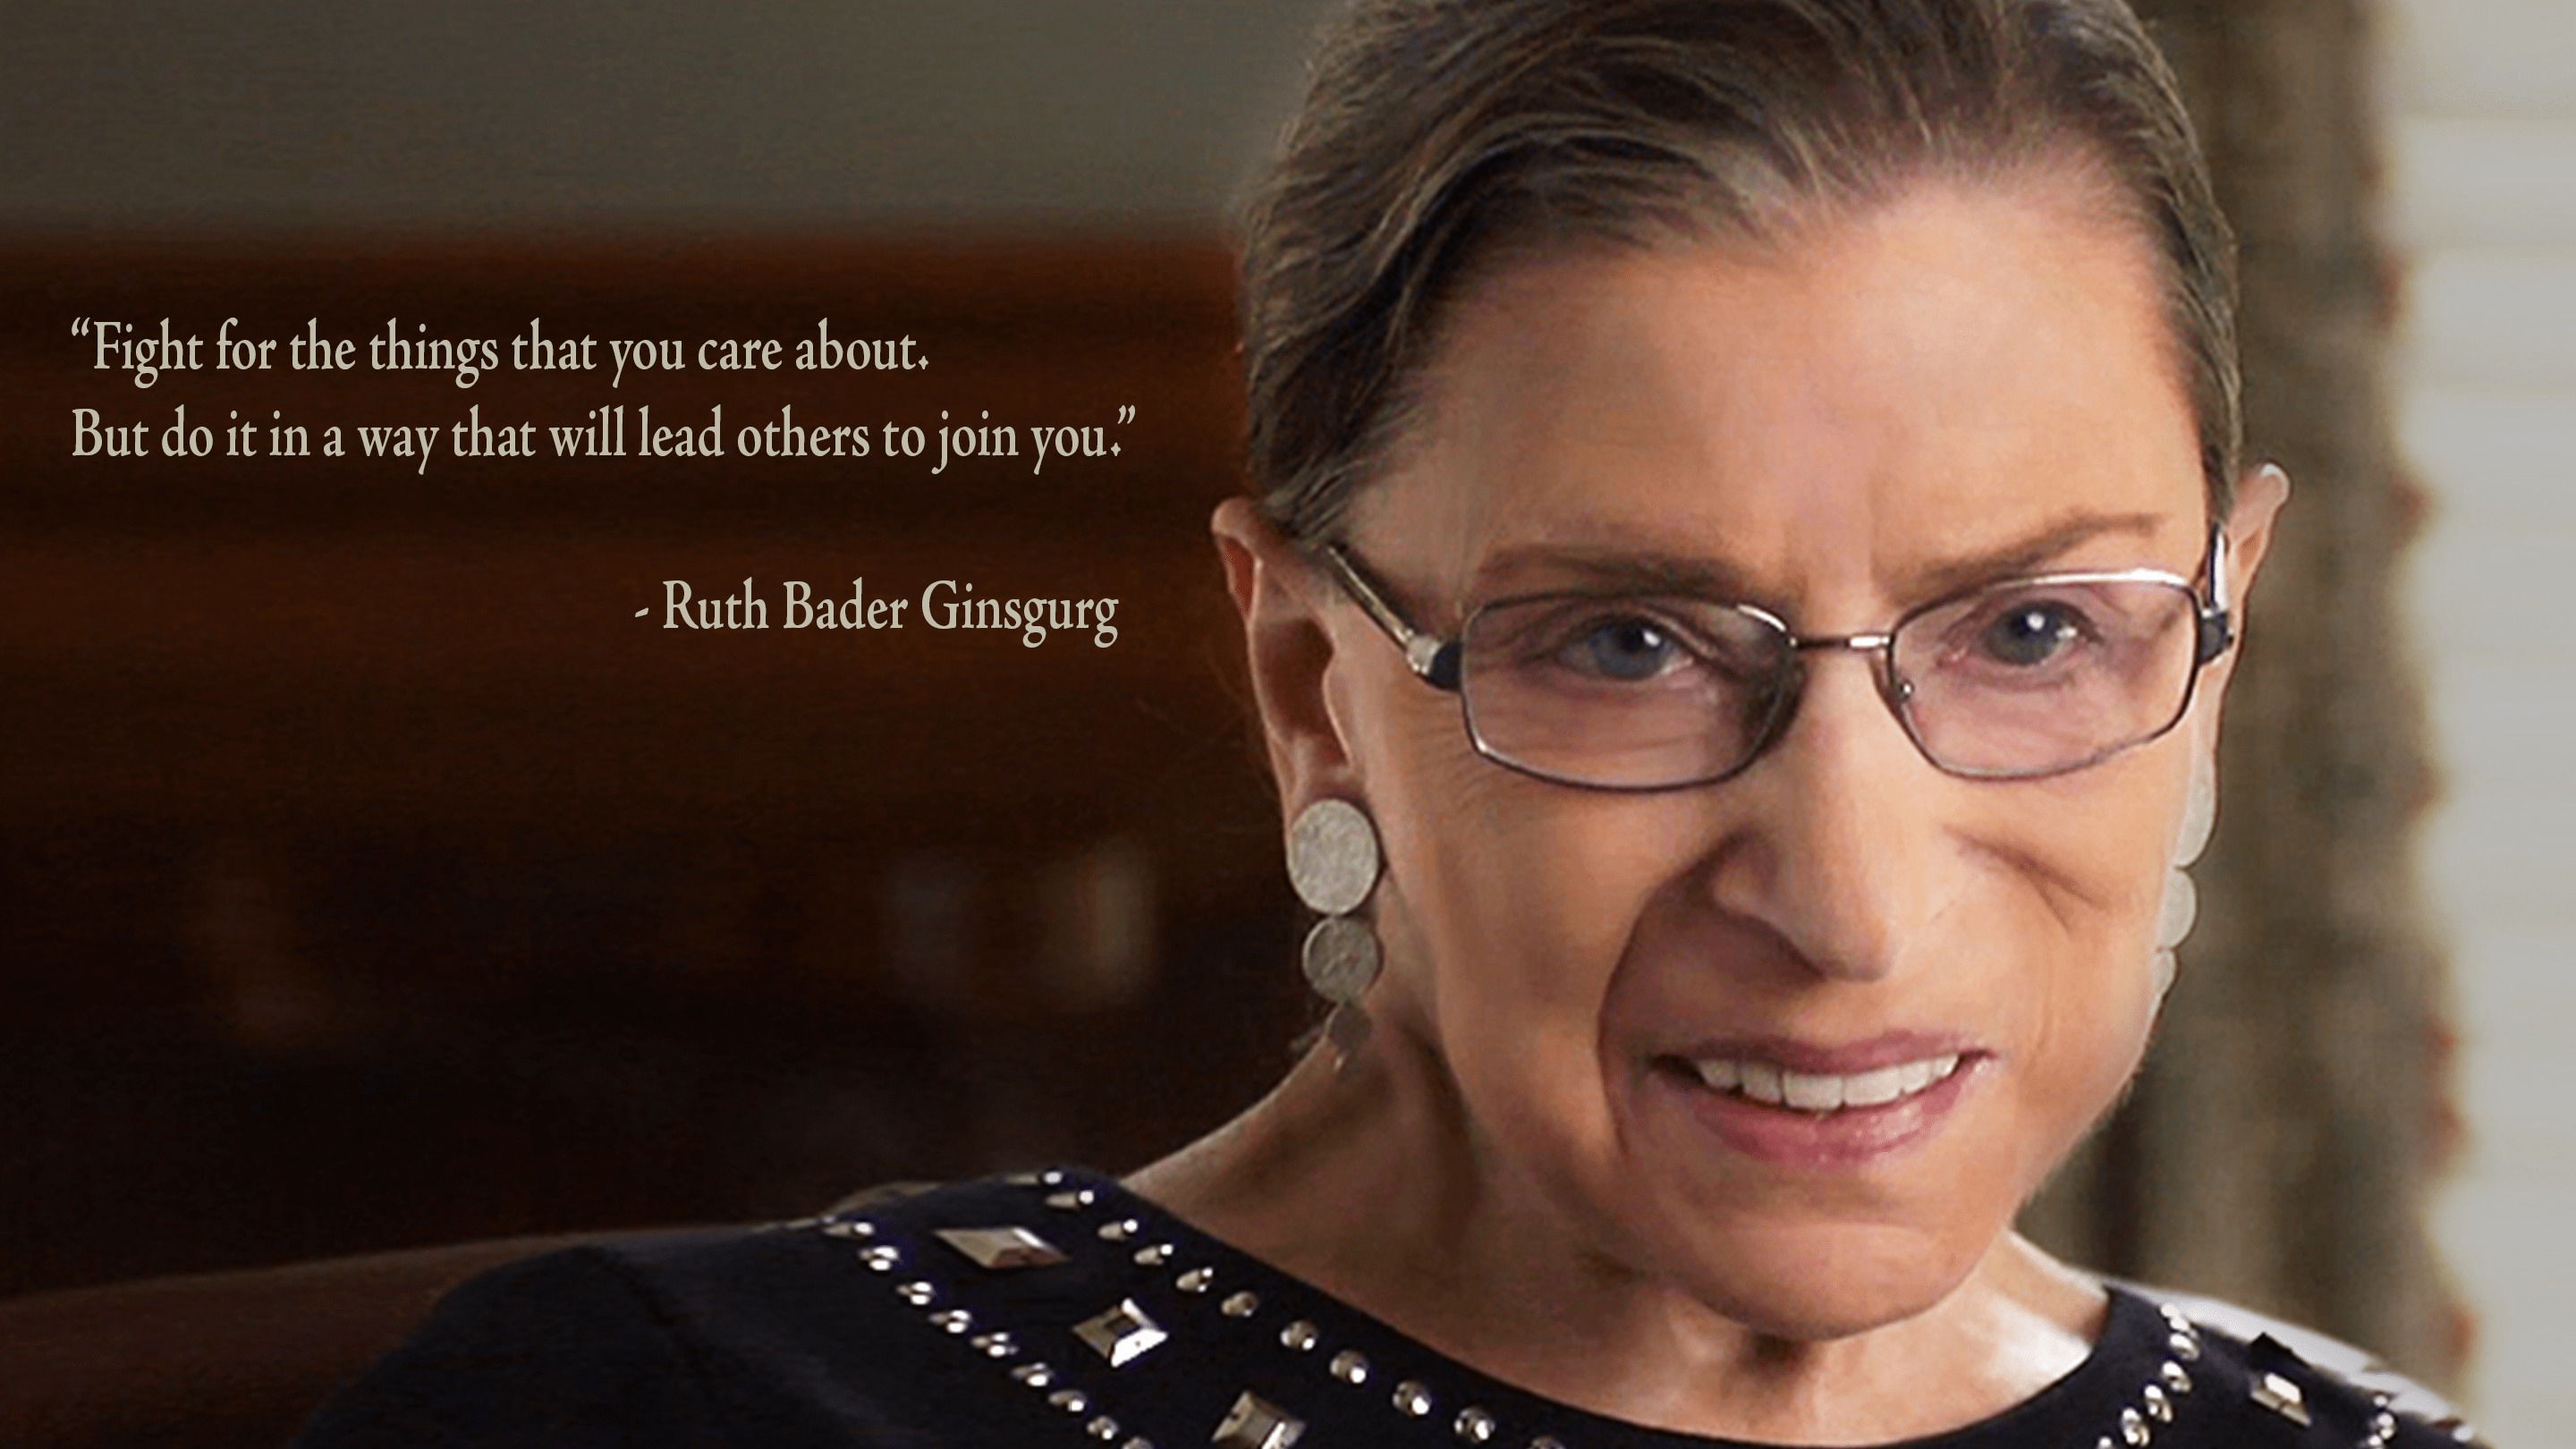 """Fight for the things that you care about. But do it in a way that will lead others to join you."" – Ruth Bader Ginsburg [2880×1620]"